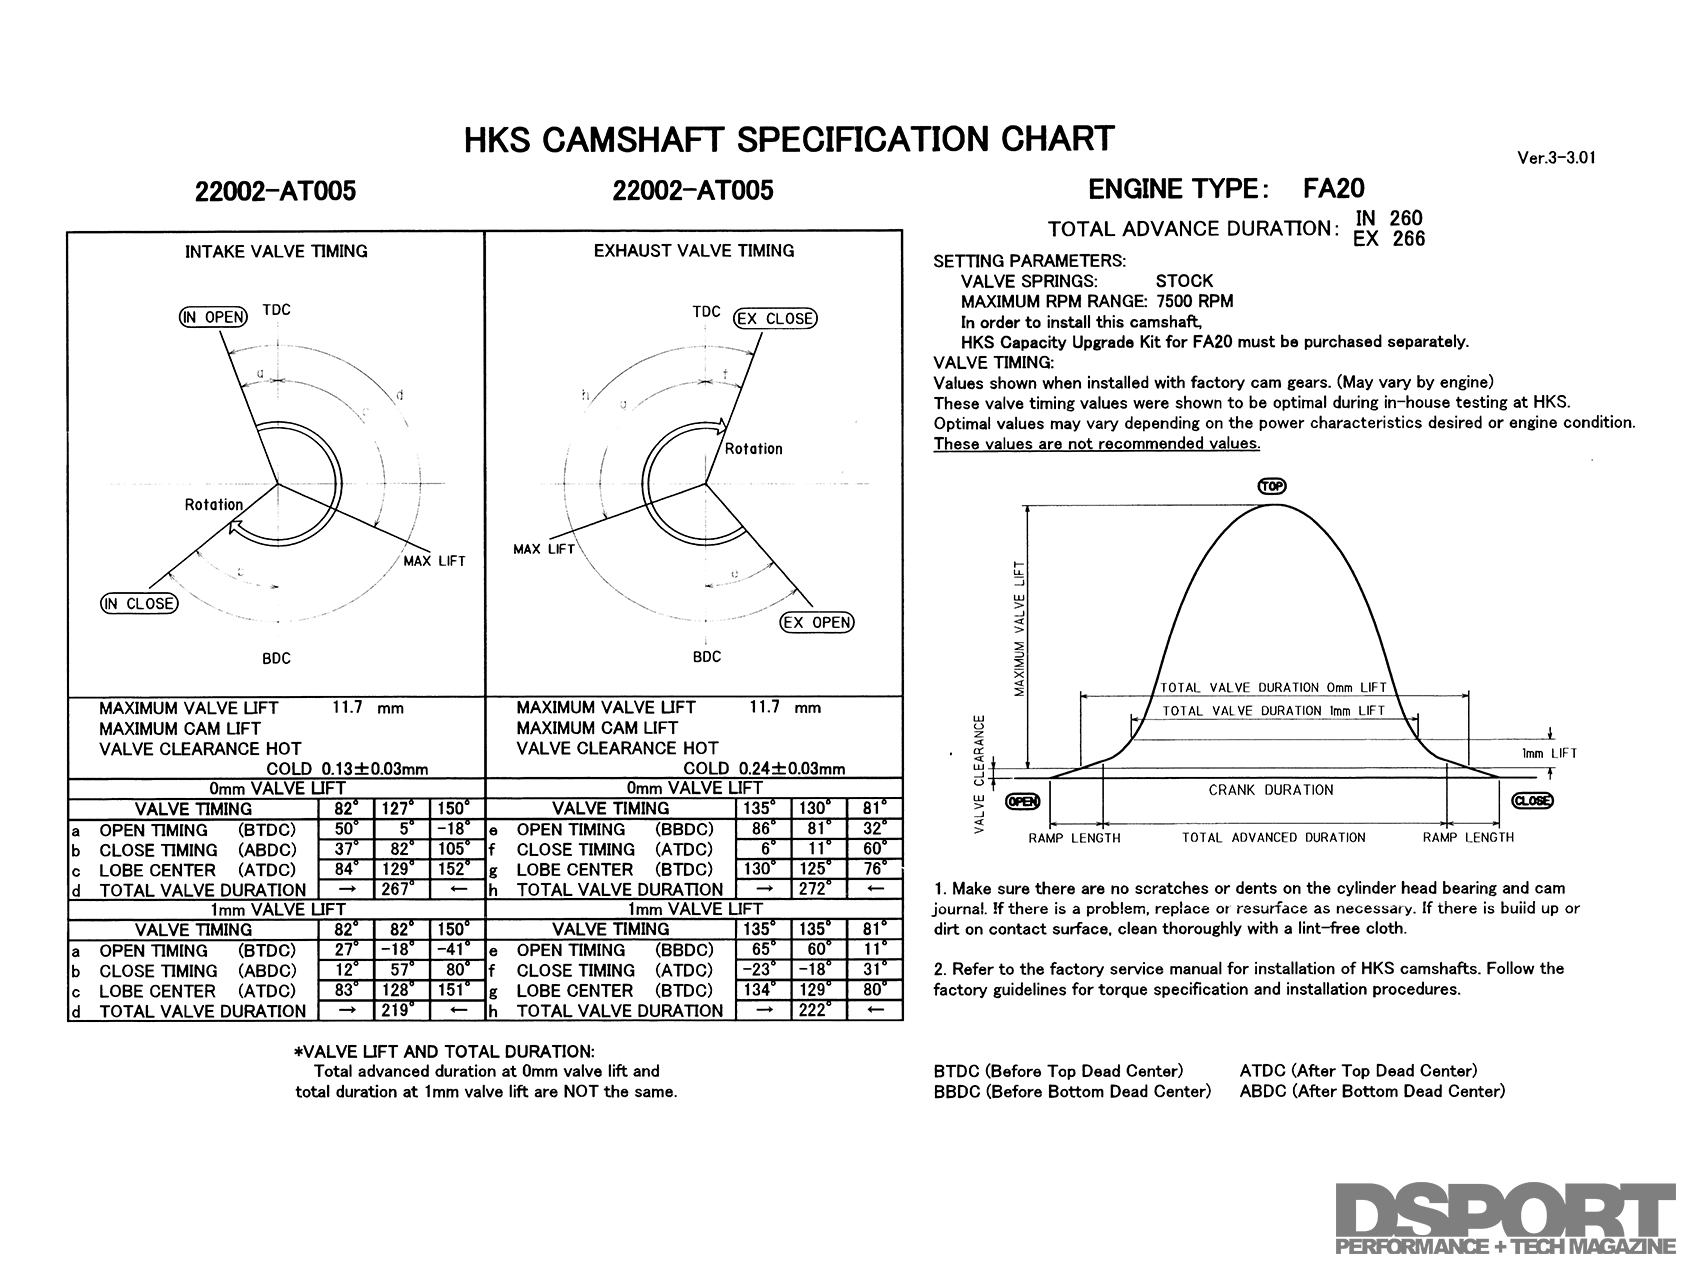 hight resolution of hks supplies a cam card that gives the data needed to properly degree the camshaft in the engine